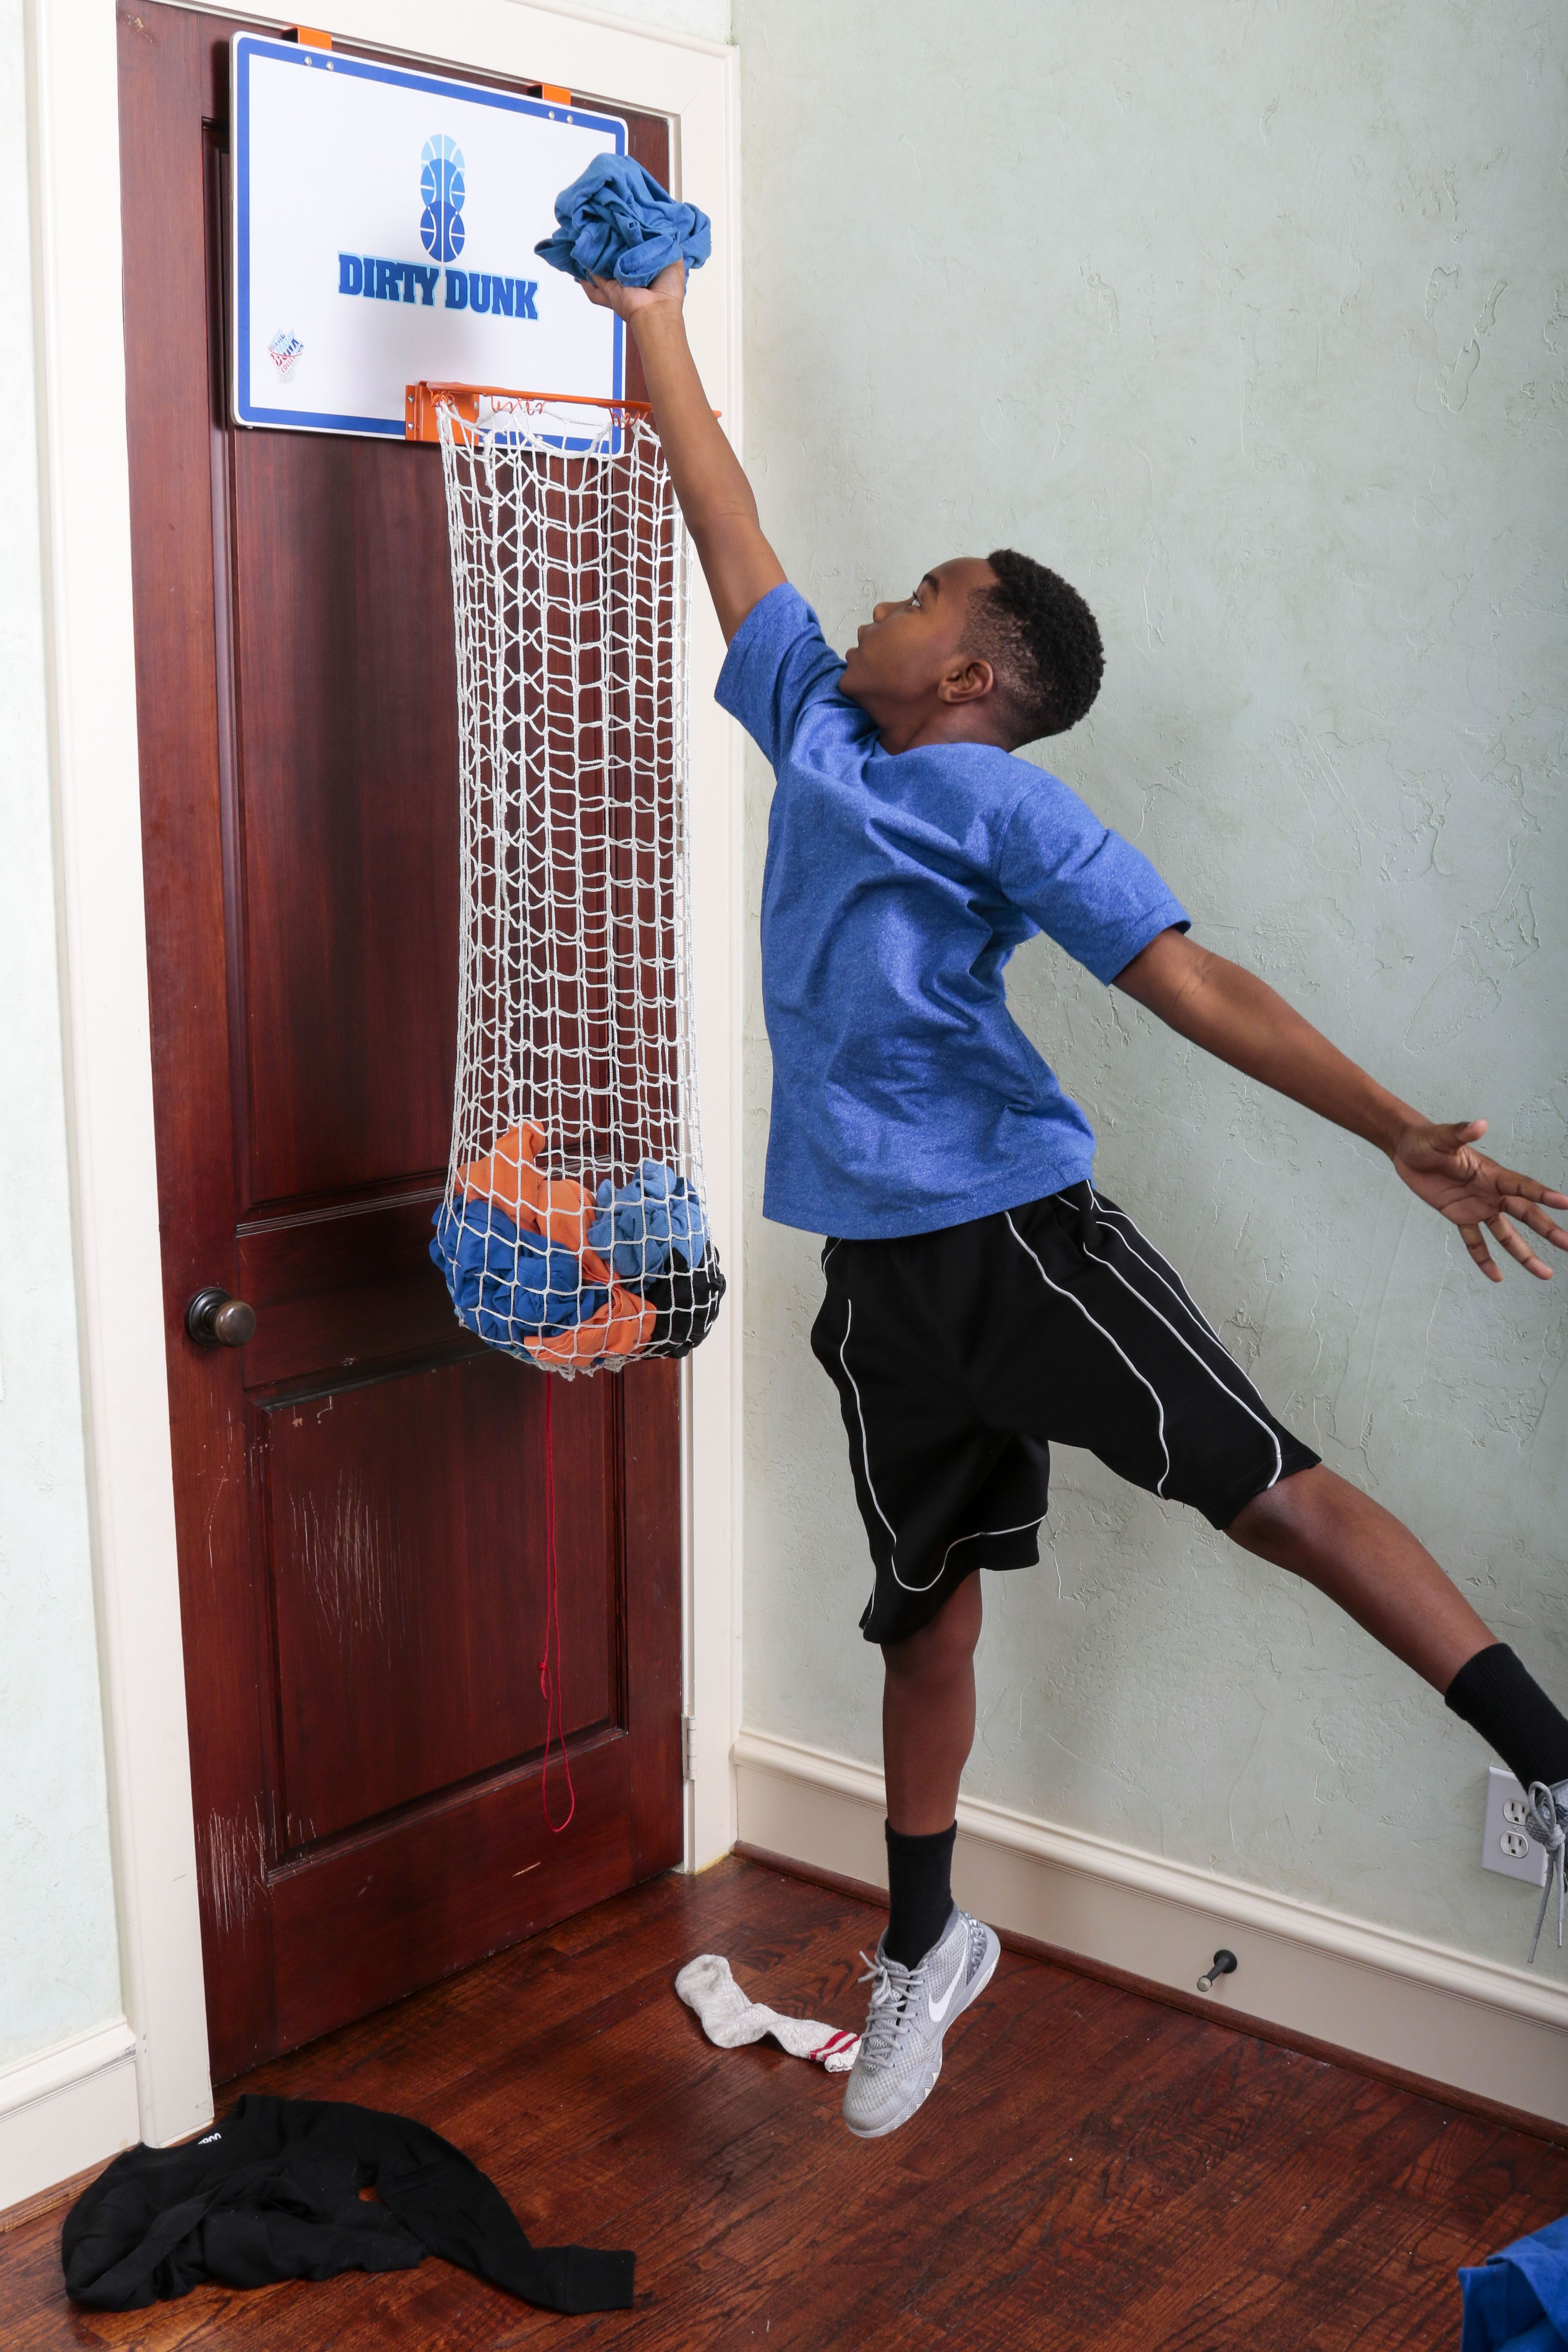 Basketball Hoop Laundry Basket Great Gift For Boys Keeps Laundry Off The Floor And Is A Fun